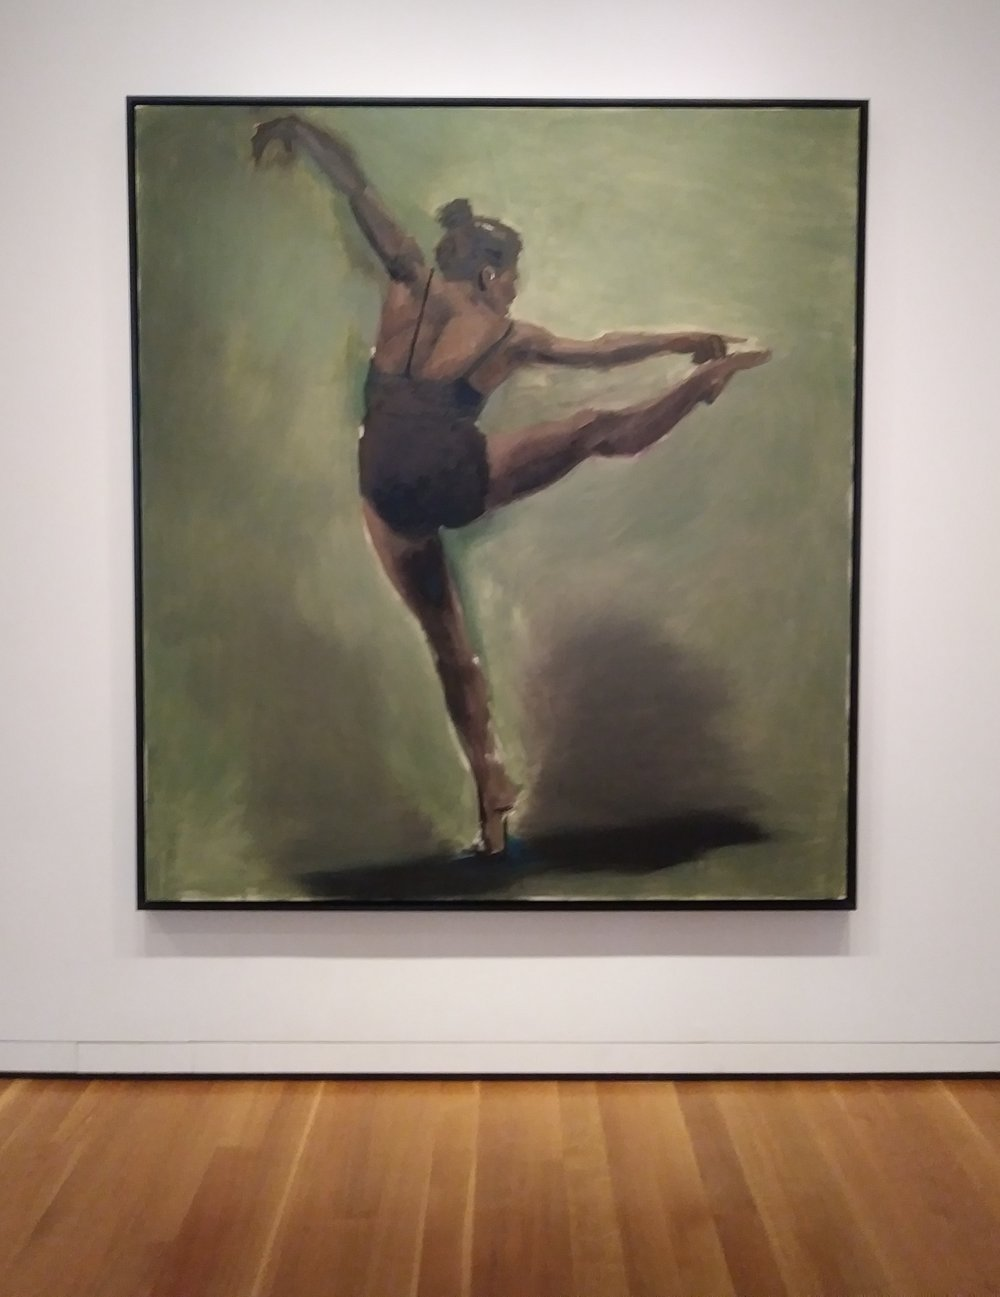 Transprung , 2013 oil on canvas by Lynette Yiadom-Boakye. Seattle Museum of Art